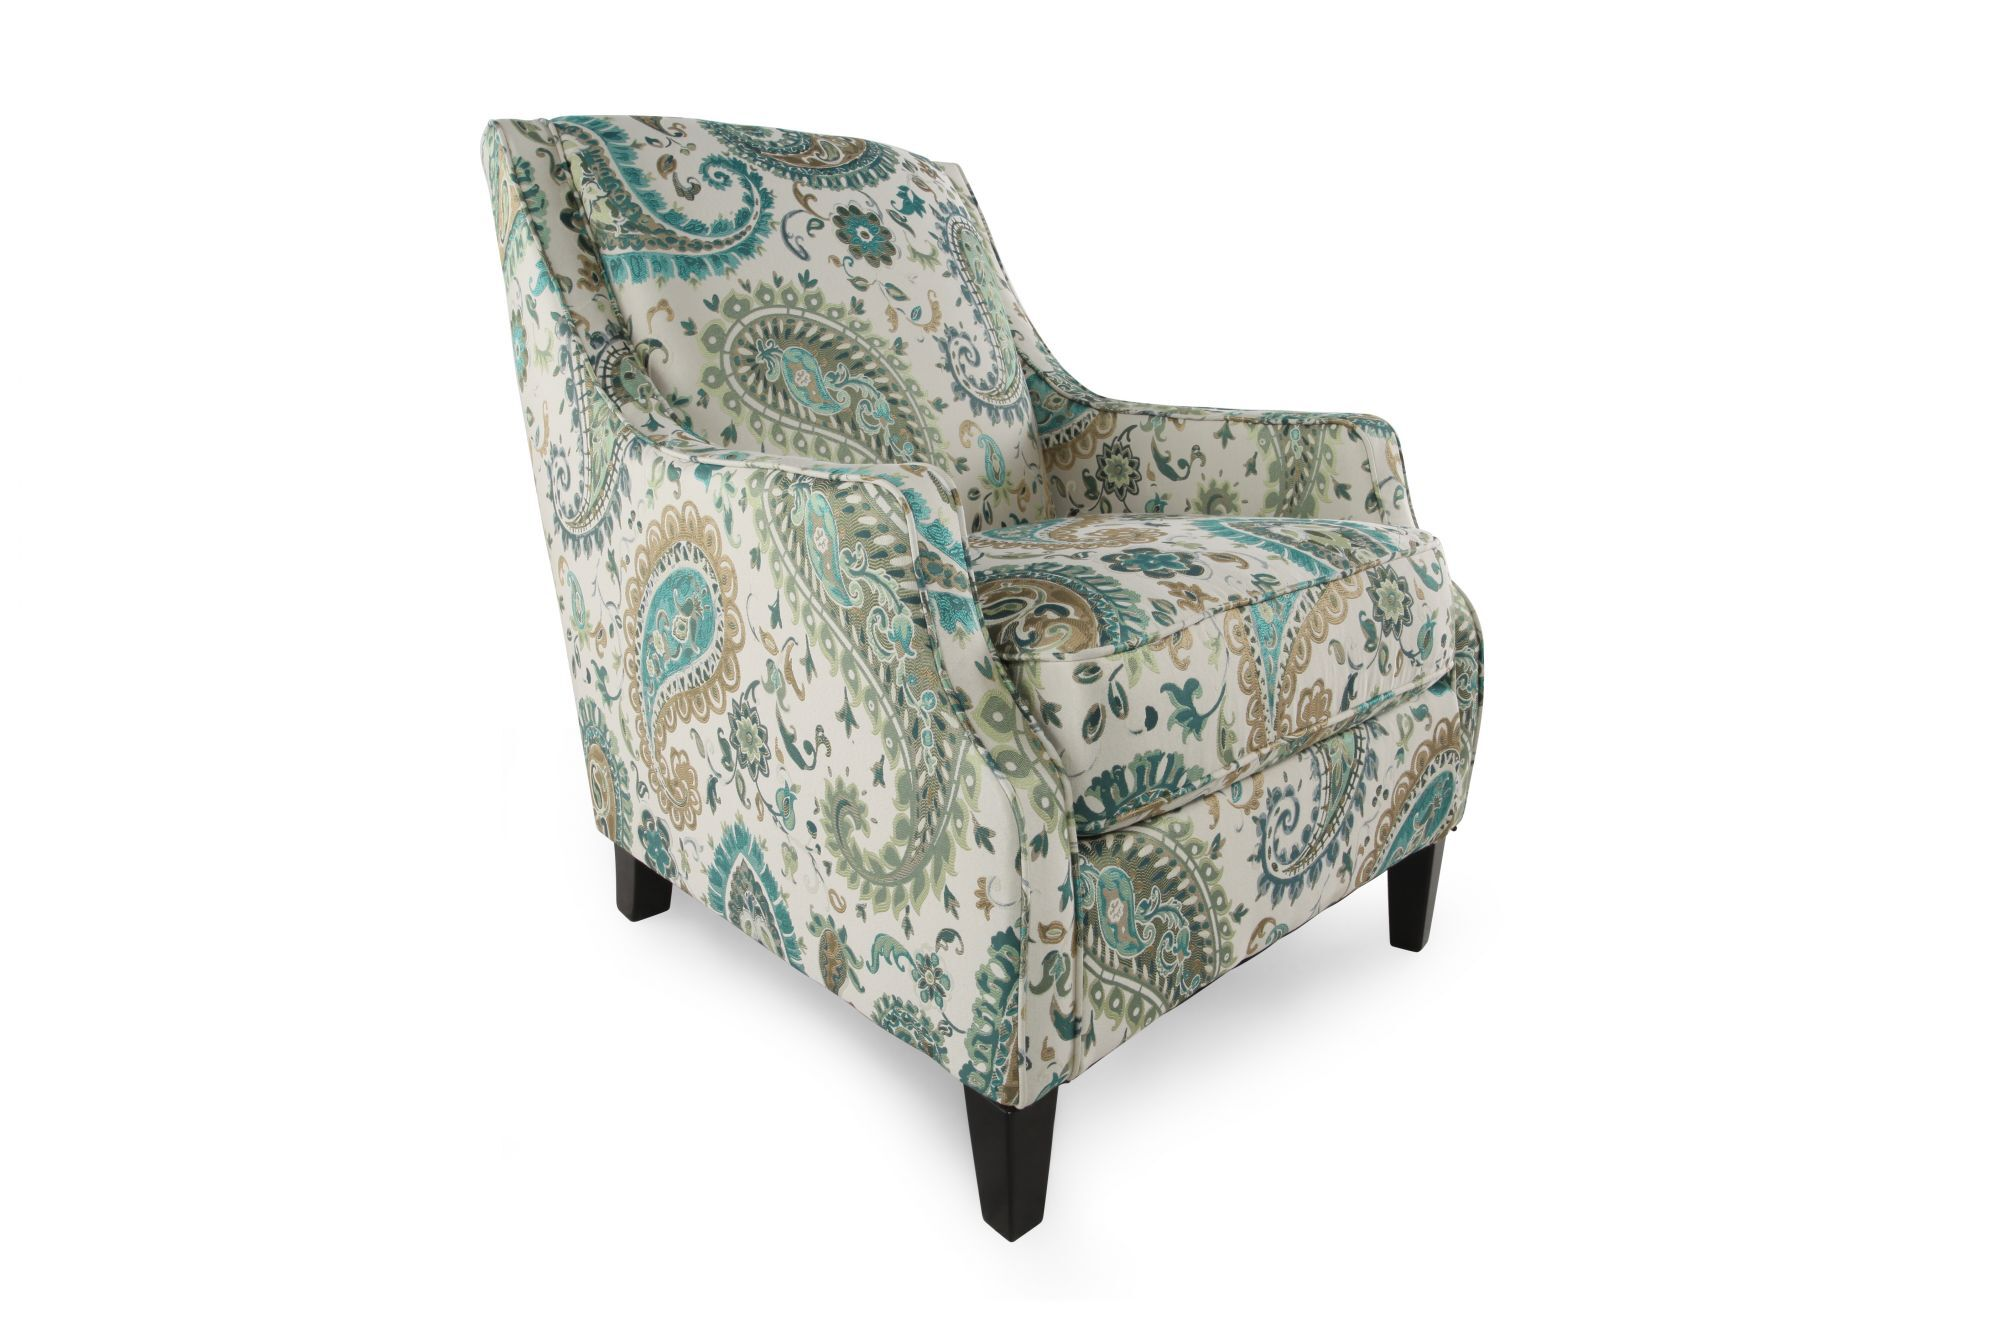 Patterned Chairs Paisley Patterned Casual Accent Chair Mathis Brothers